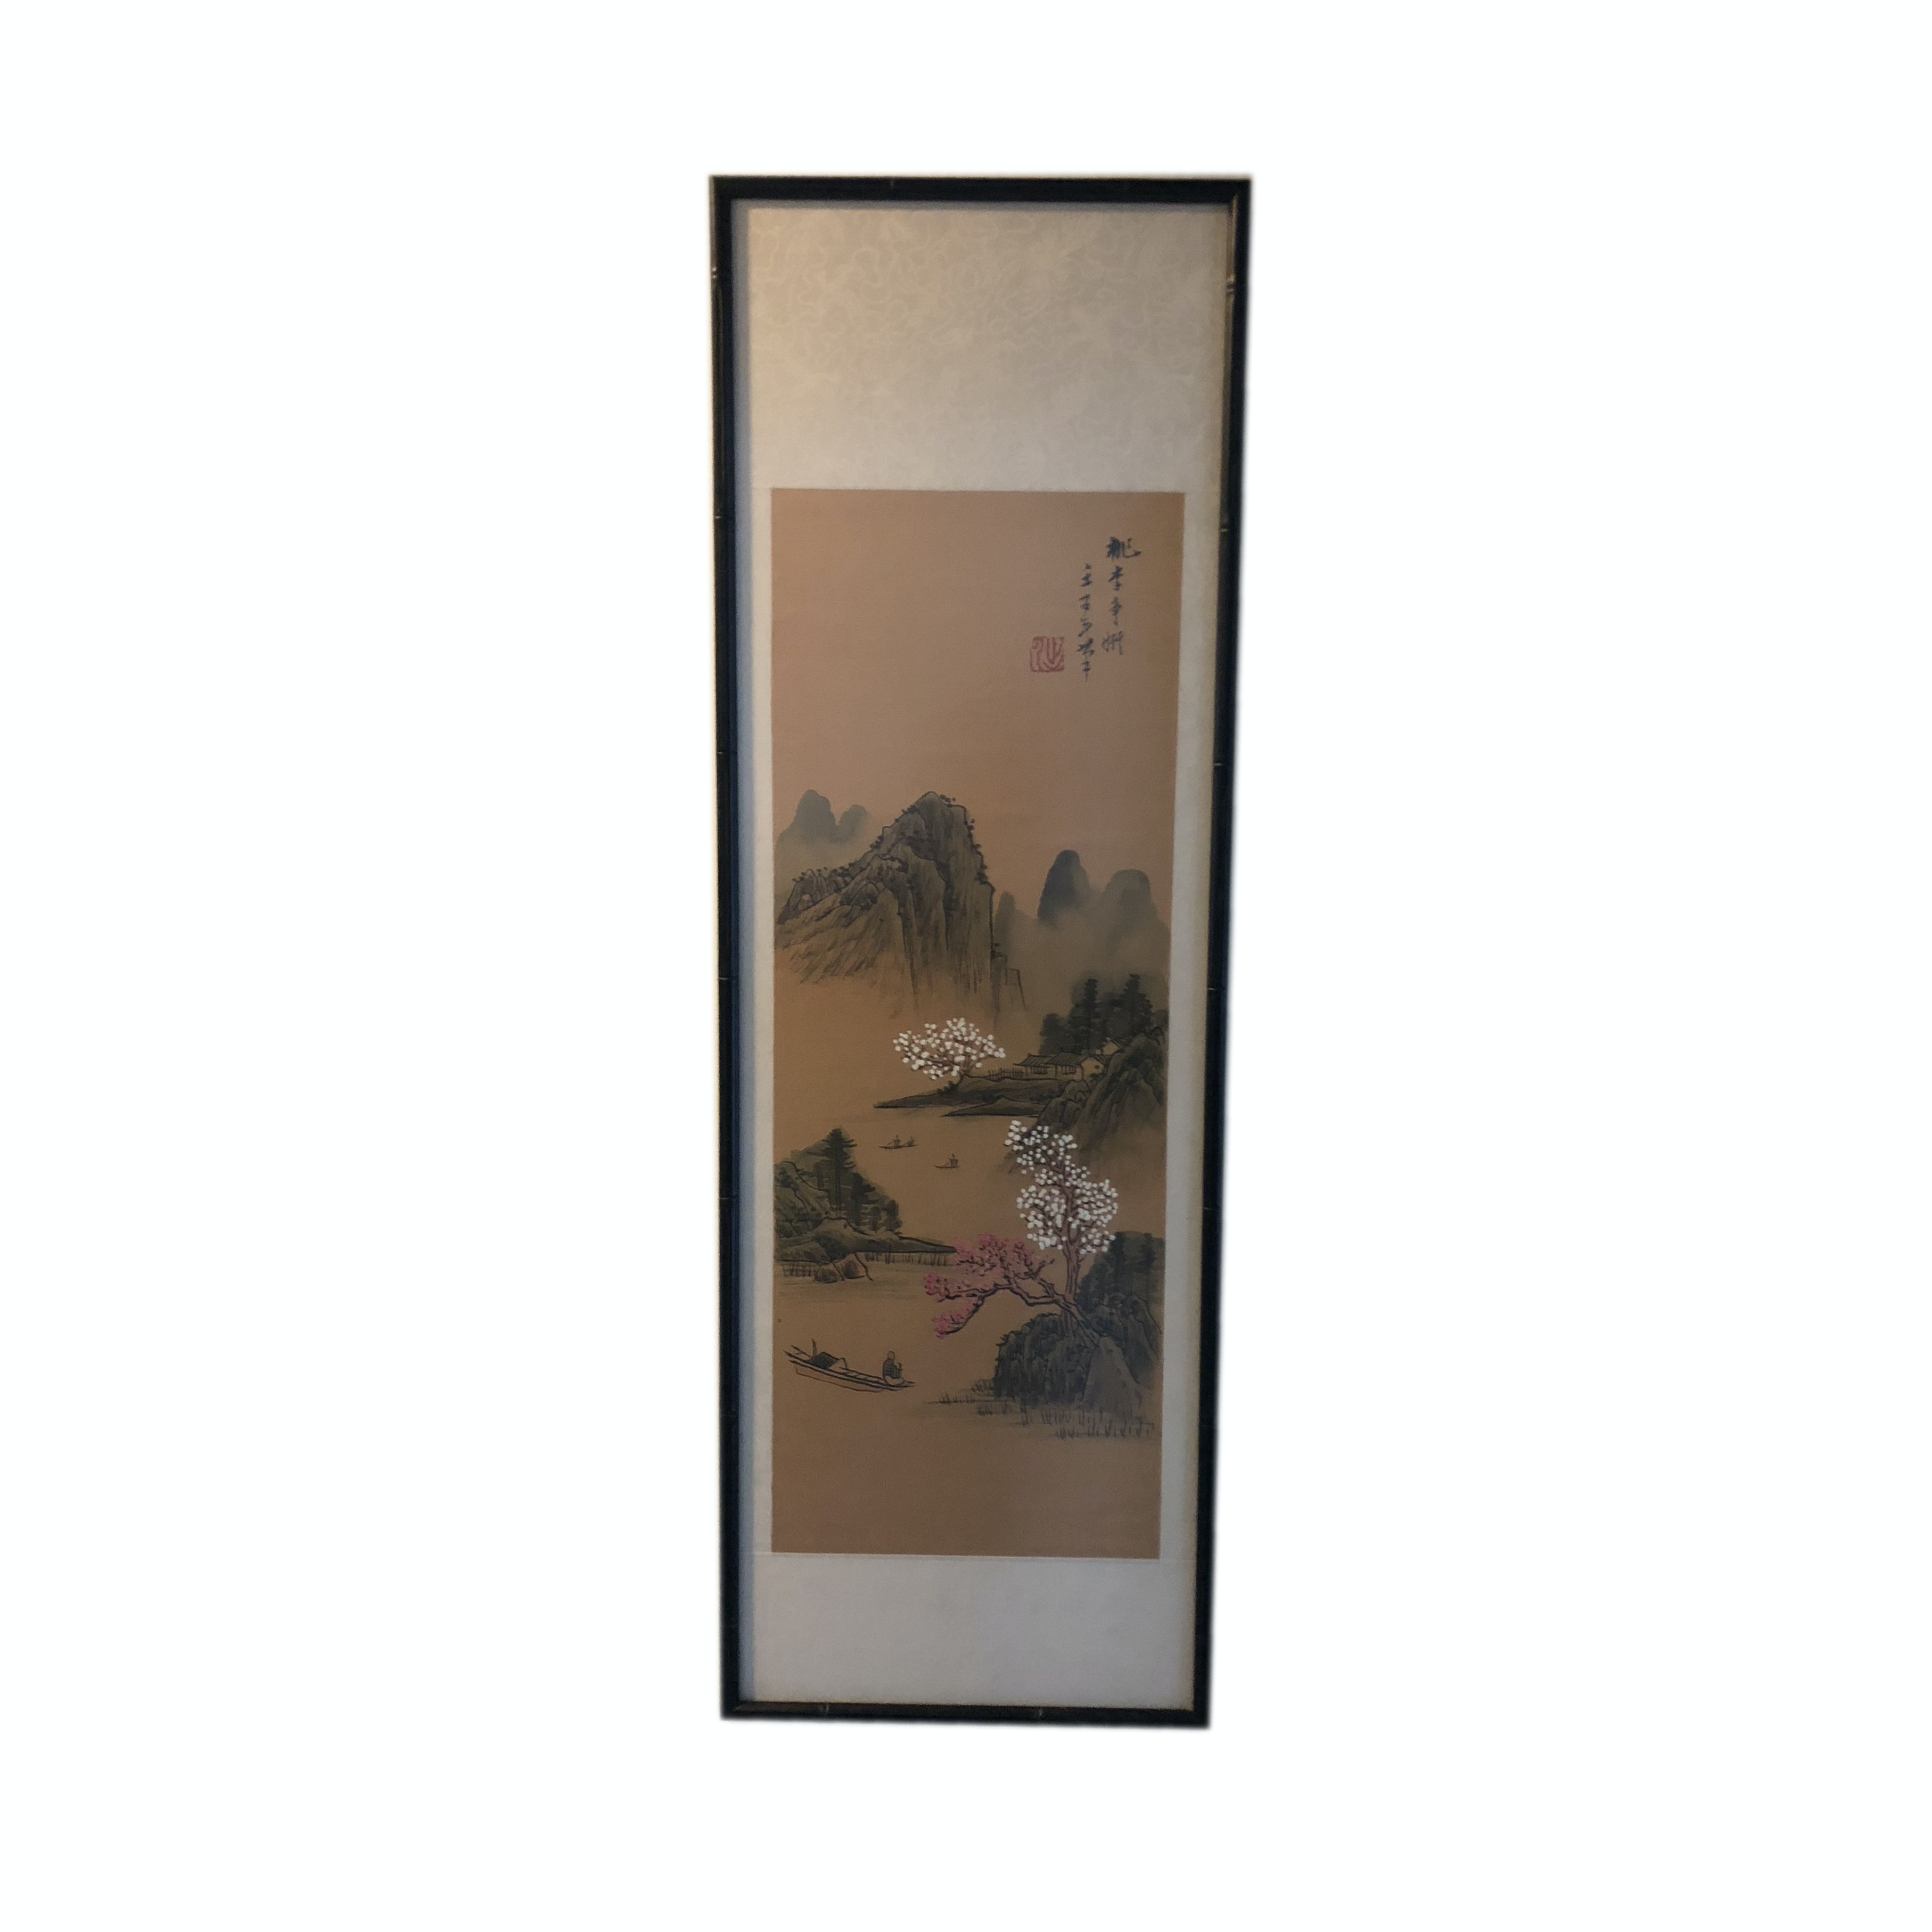 Offset Lithograph After an East Asian Landscape Painting